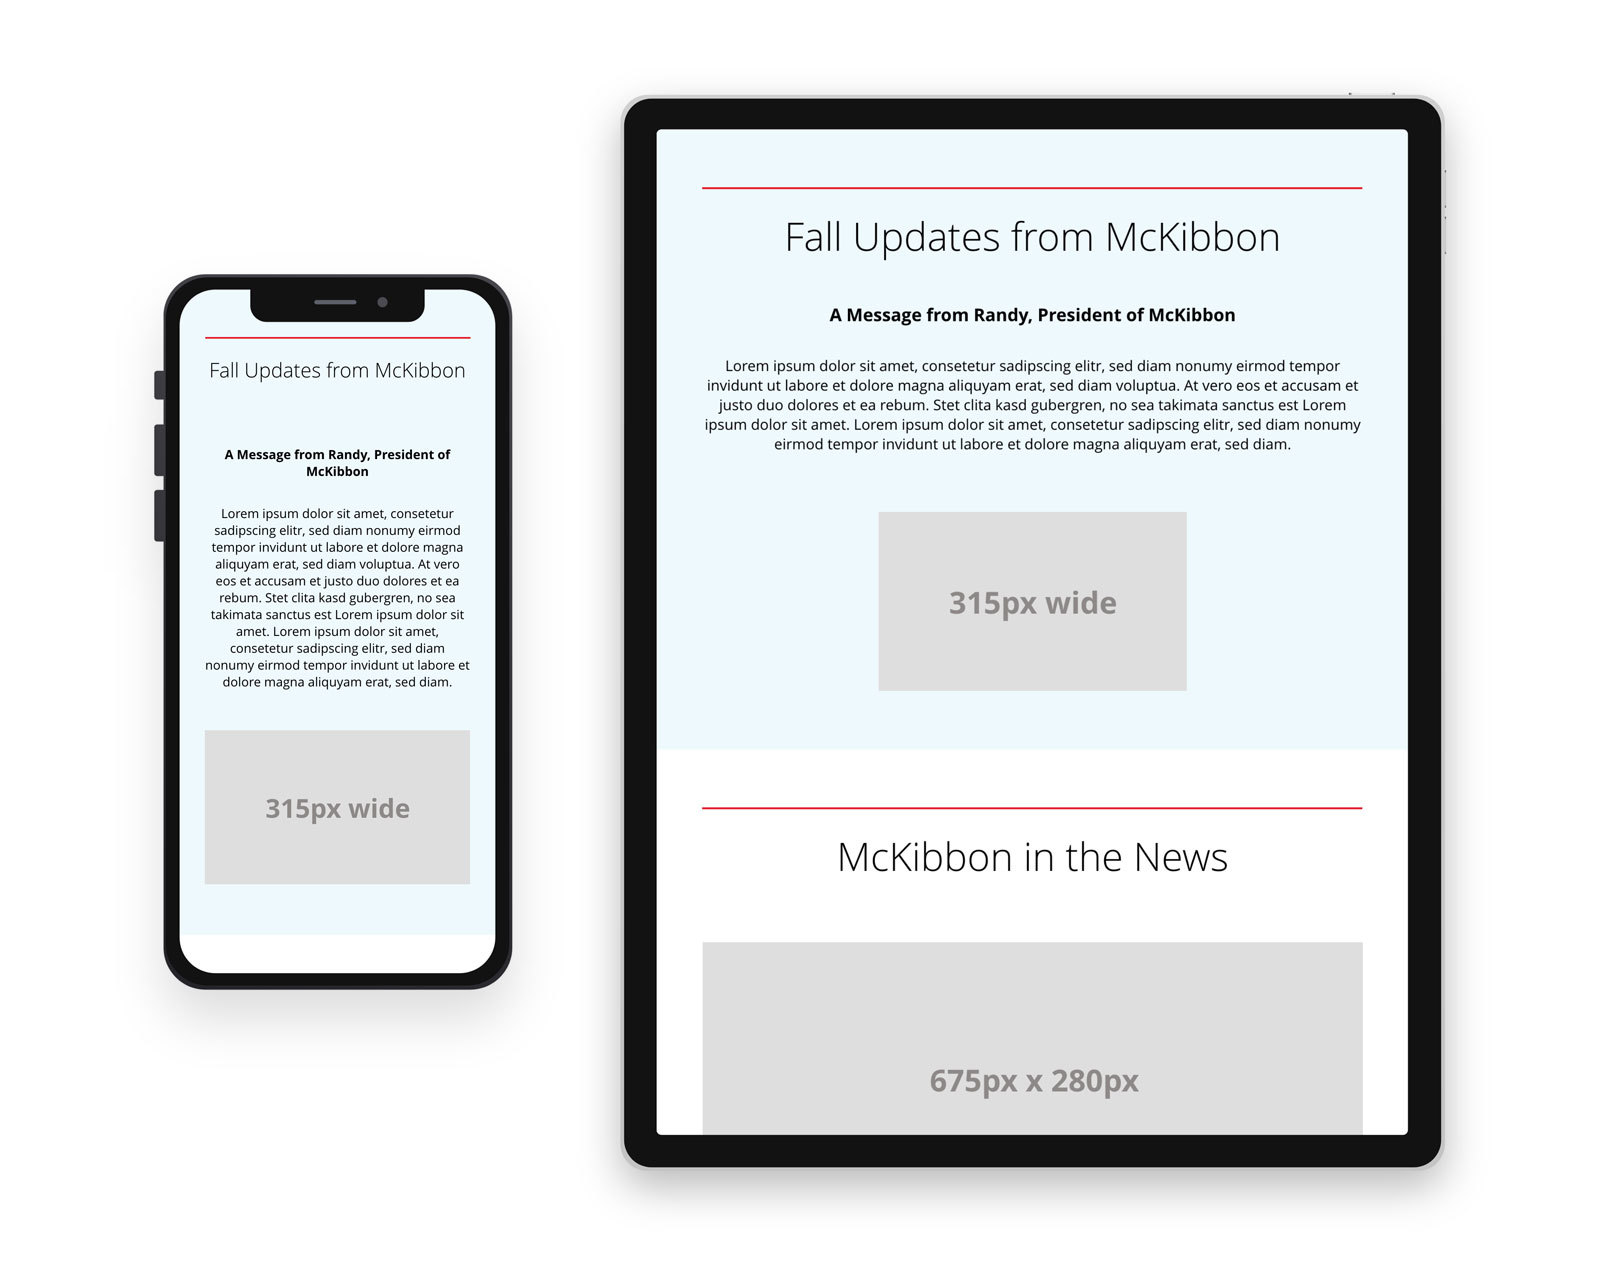 McKibbon Home Newsletter Blog Post 3 - View on mobile device and tablet